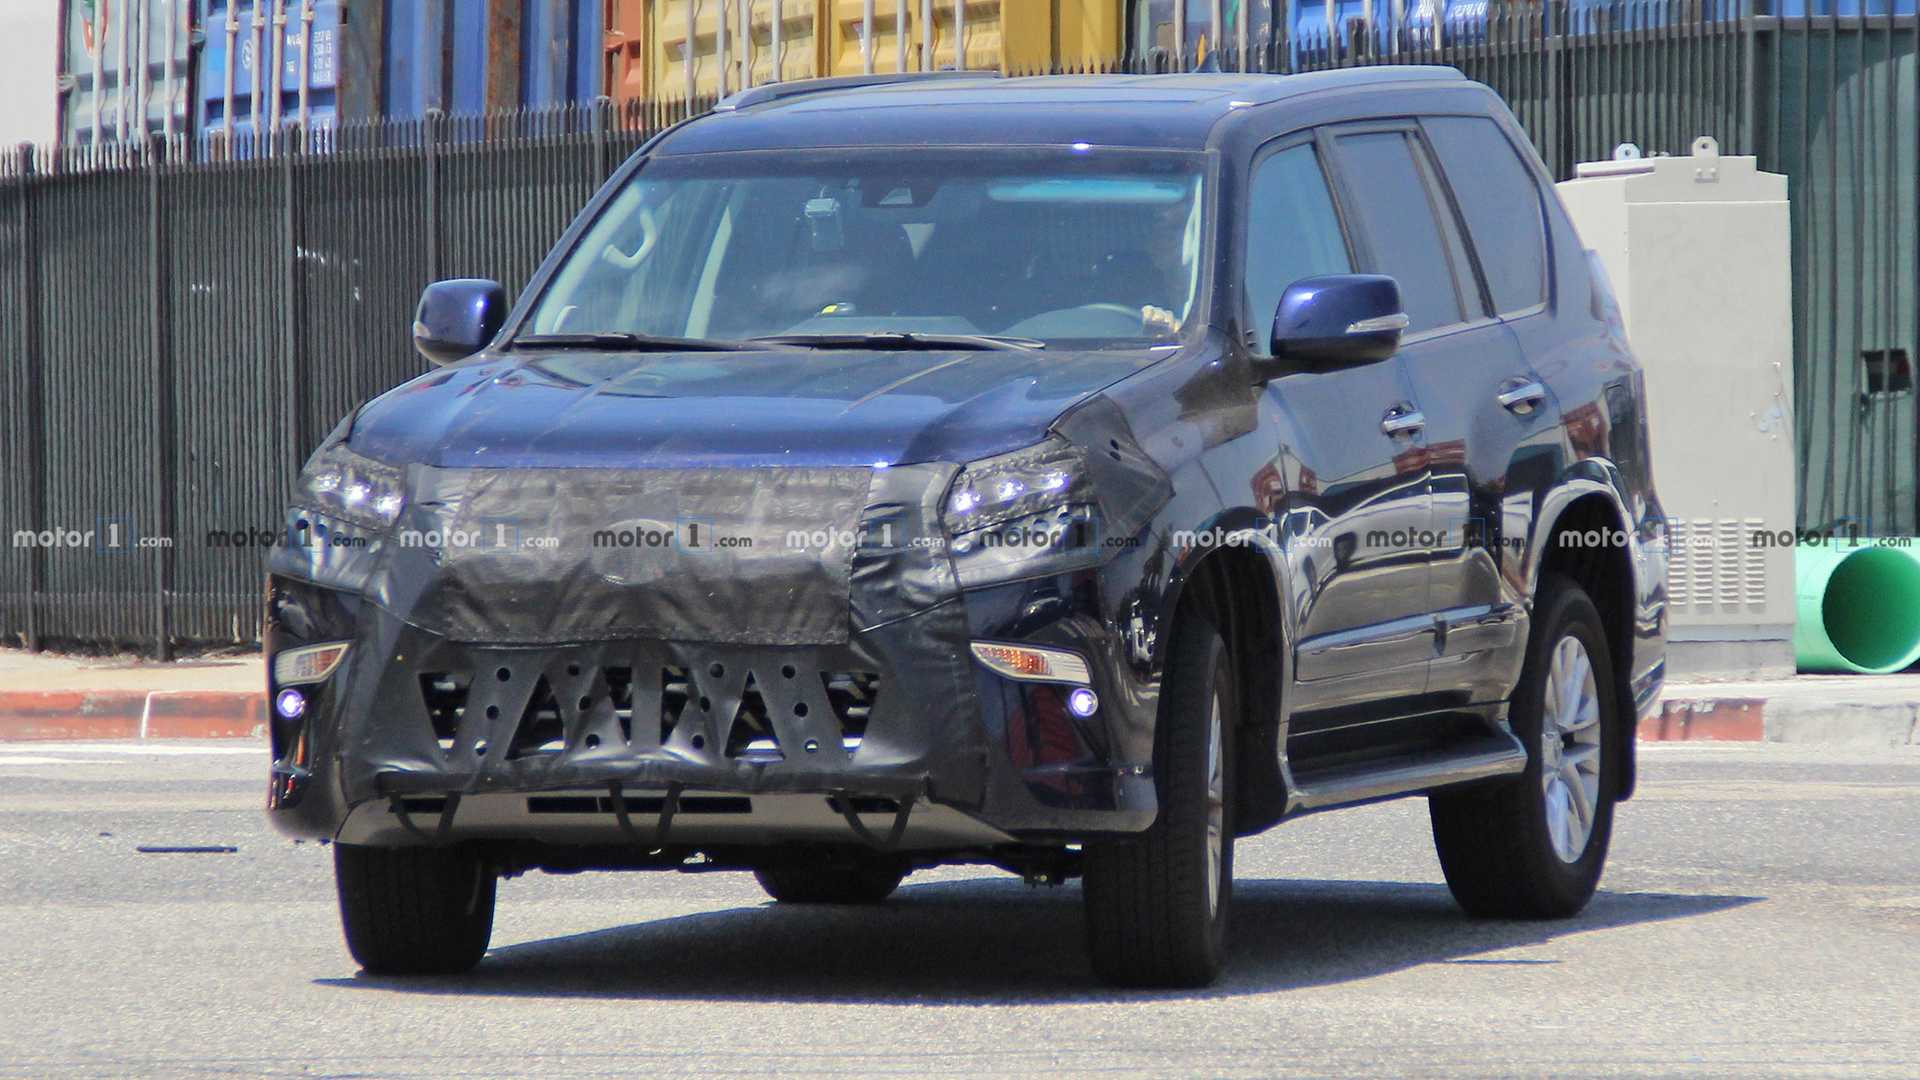 96 Gallery of 2020 Lexus Gx 460 Spy Photos Redesign for 2020 Lexus Gx 460 Spy Photos